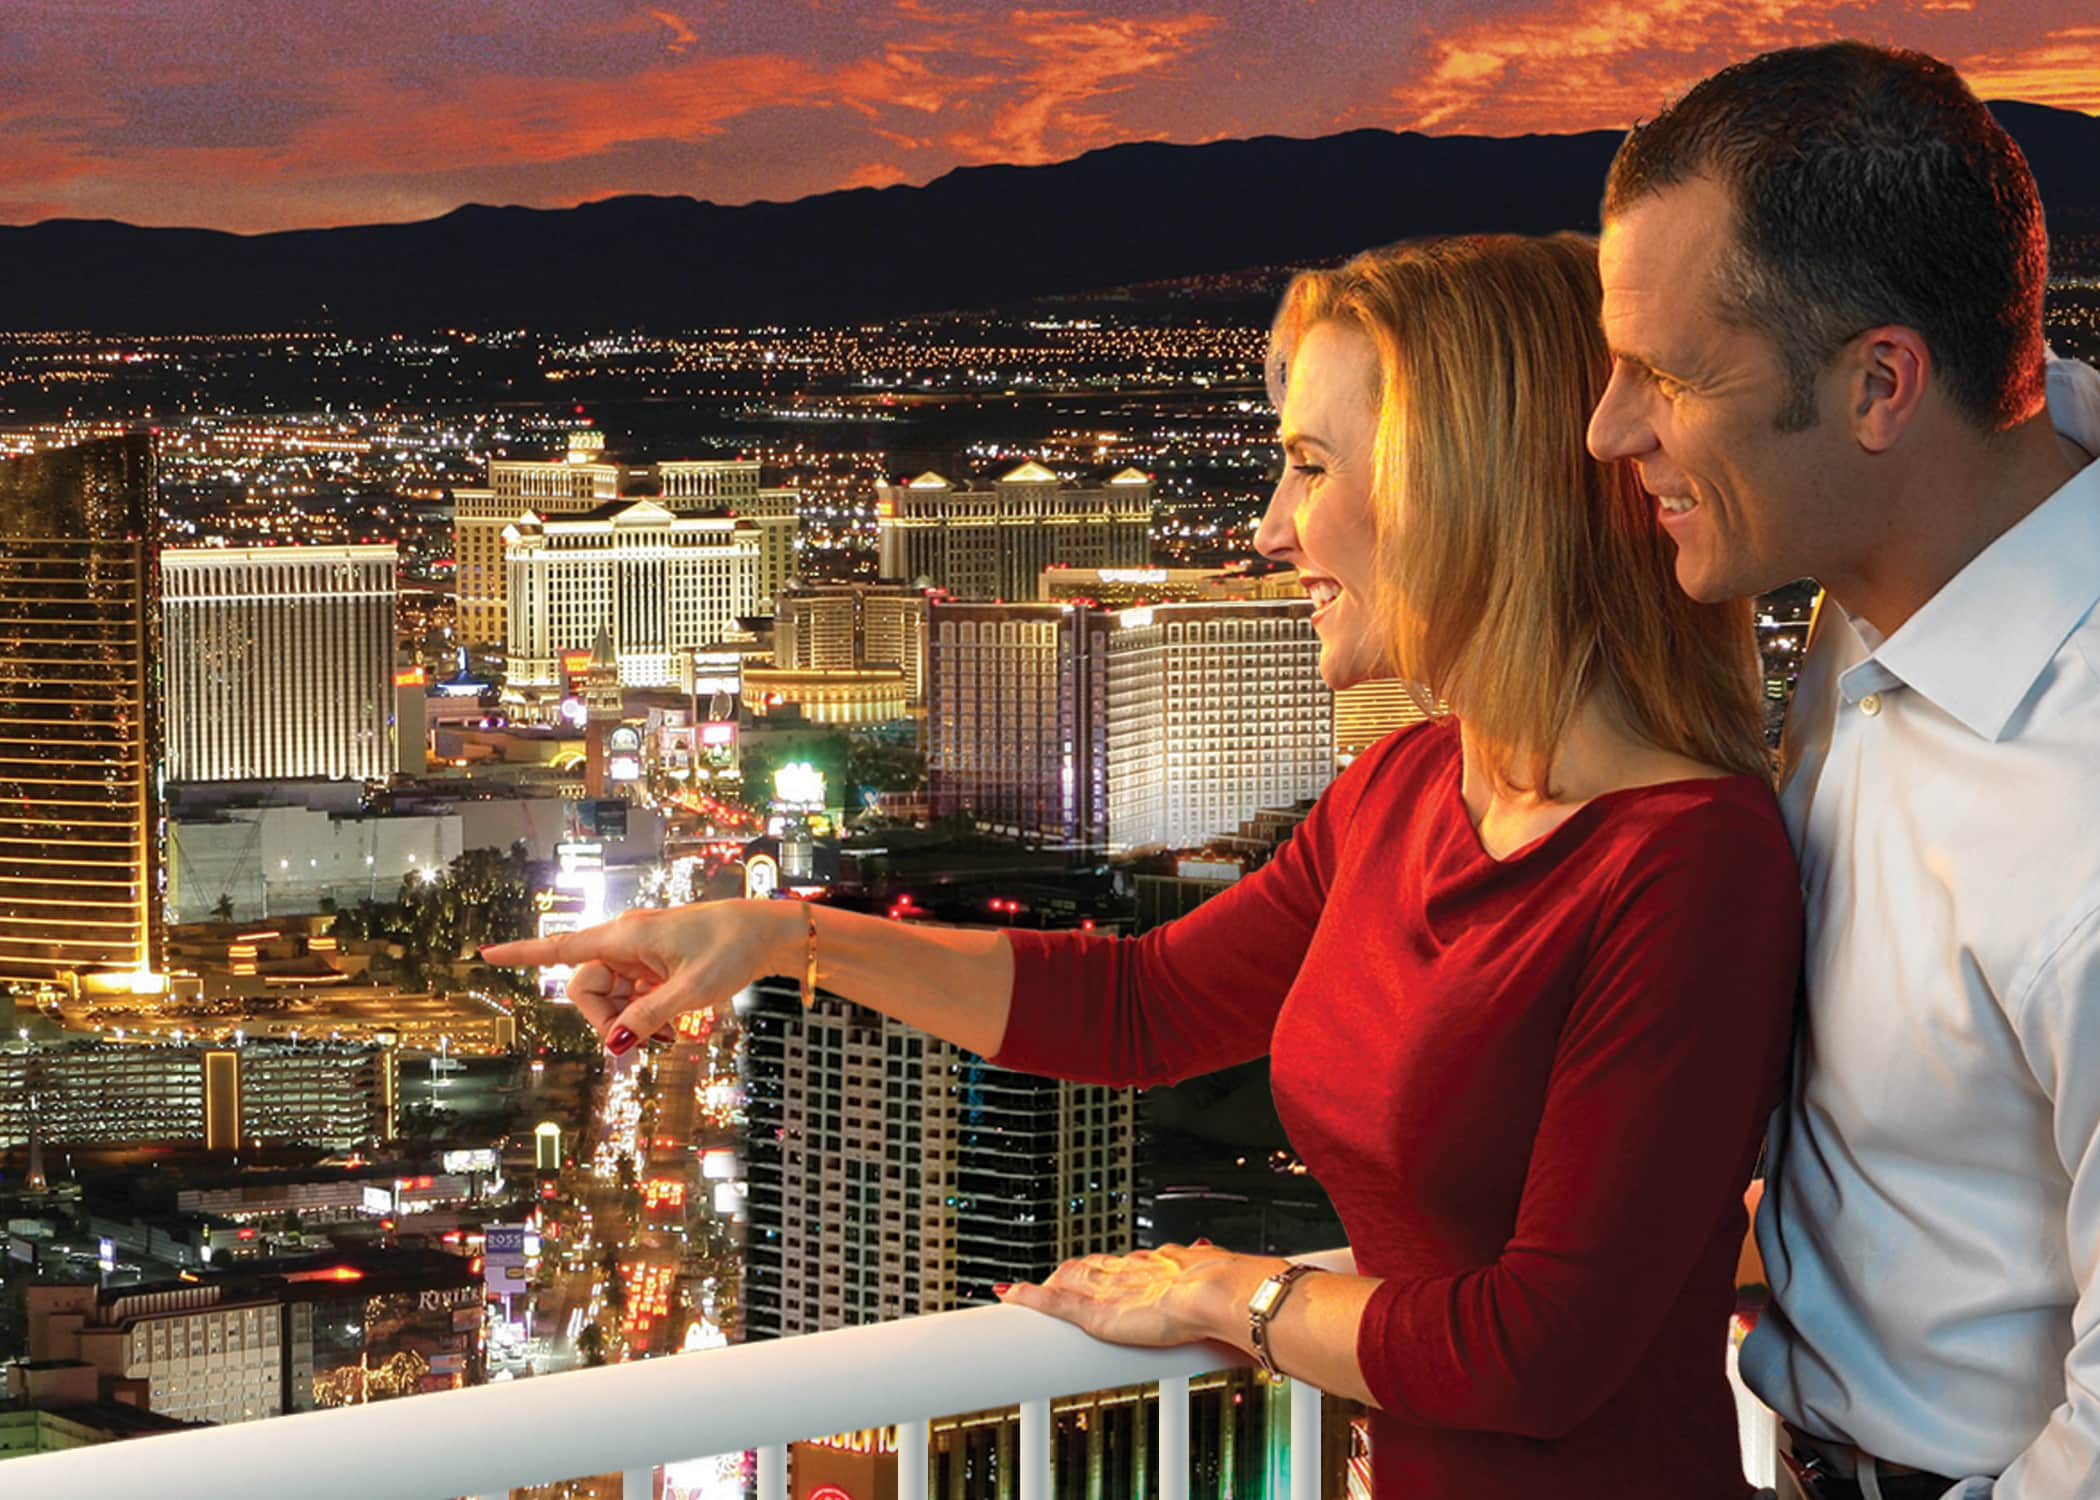 Las Vegas Stratosphere Observation Deck and Thrill Rides